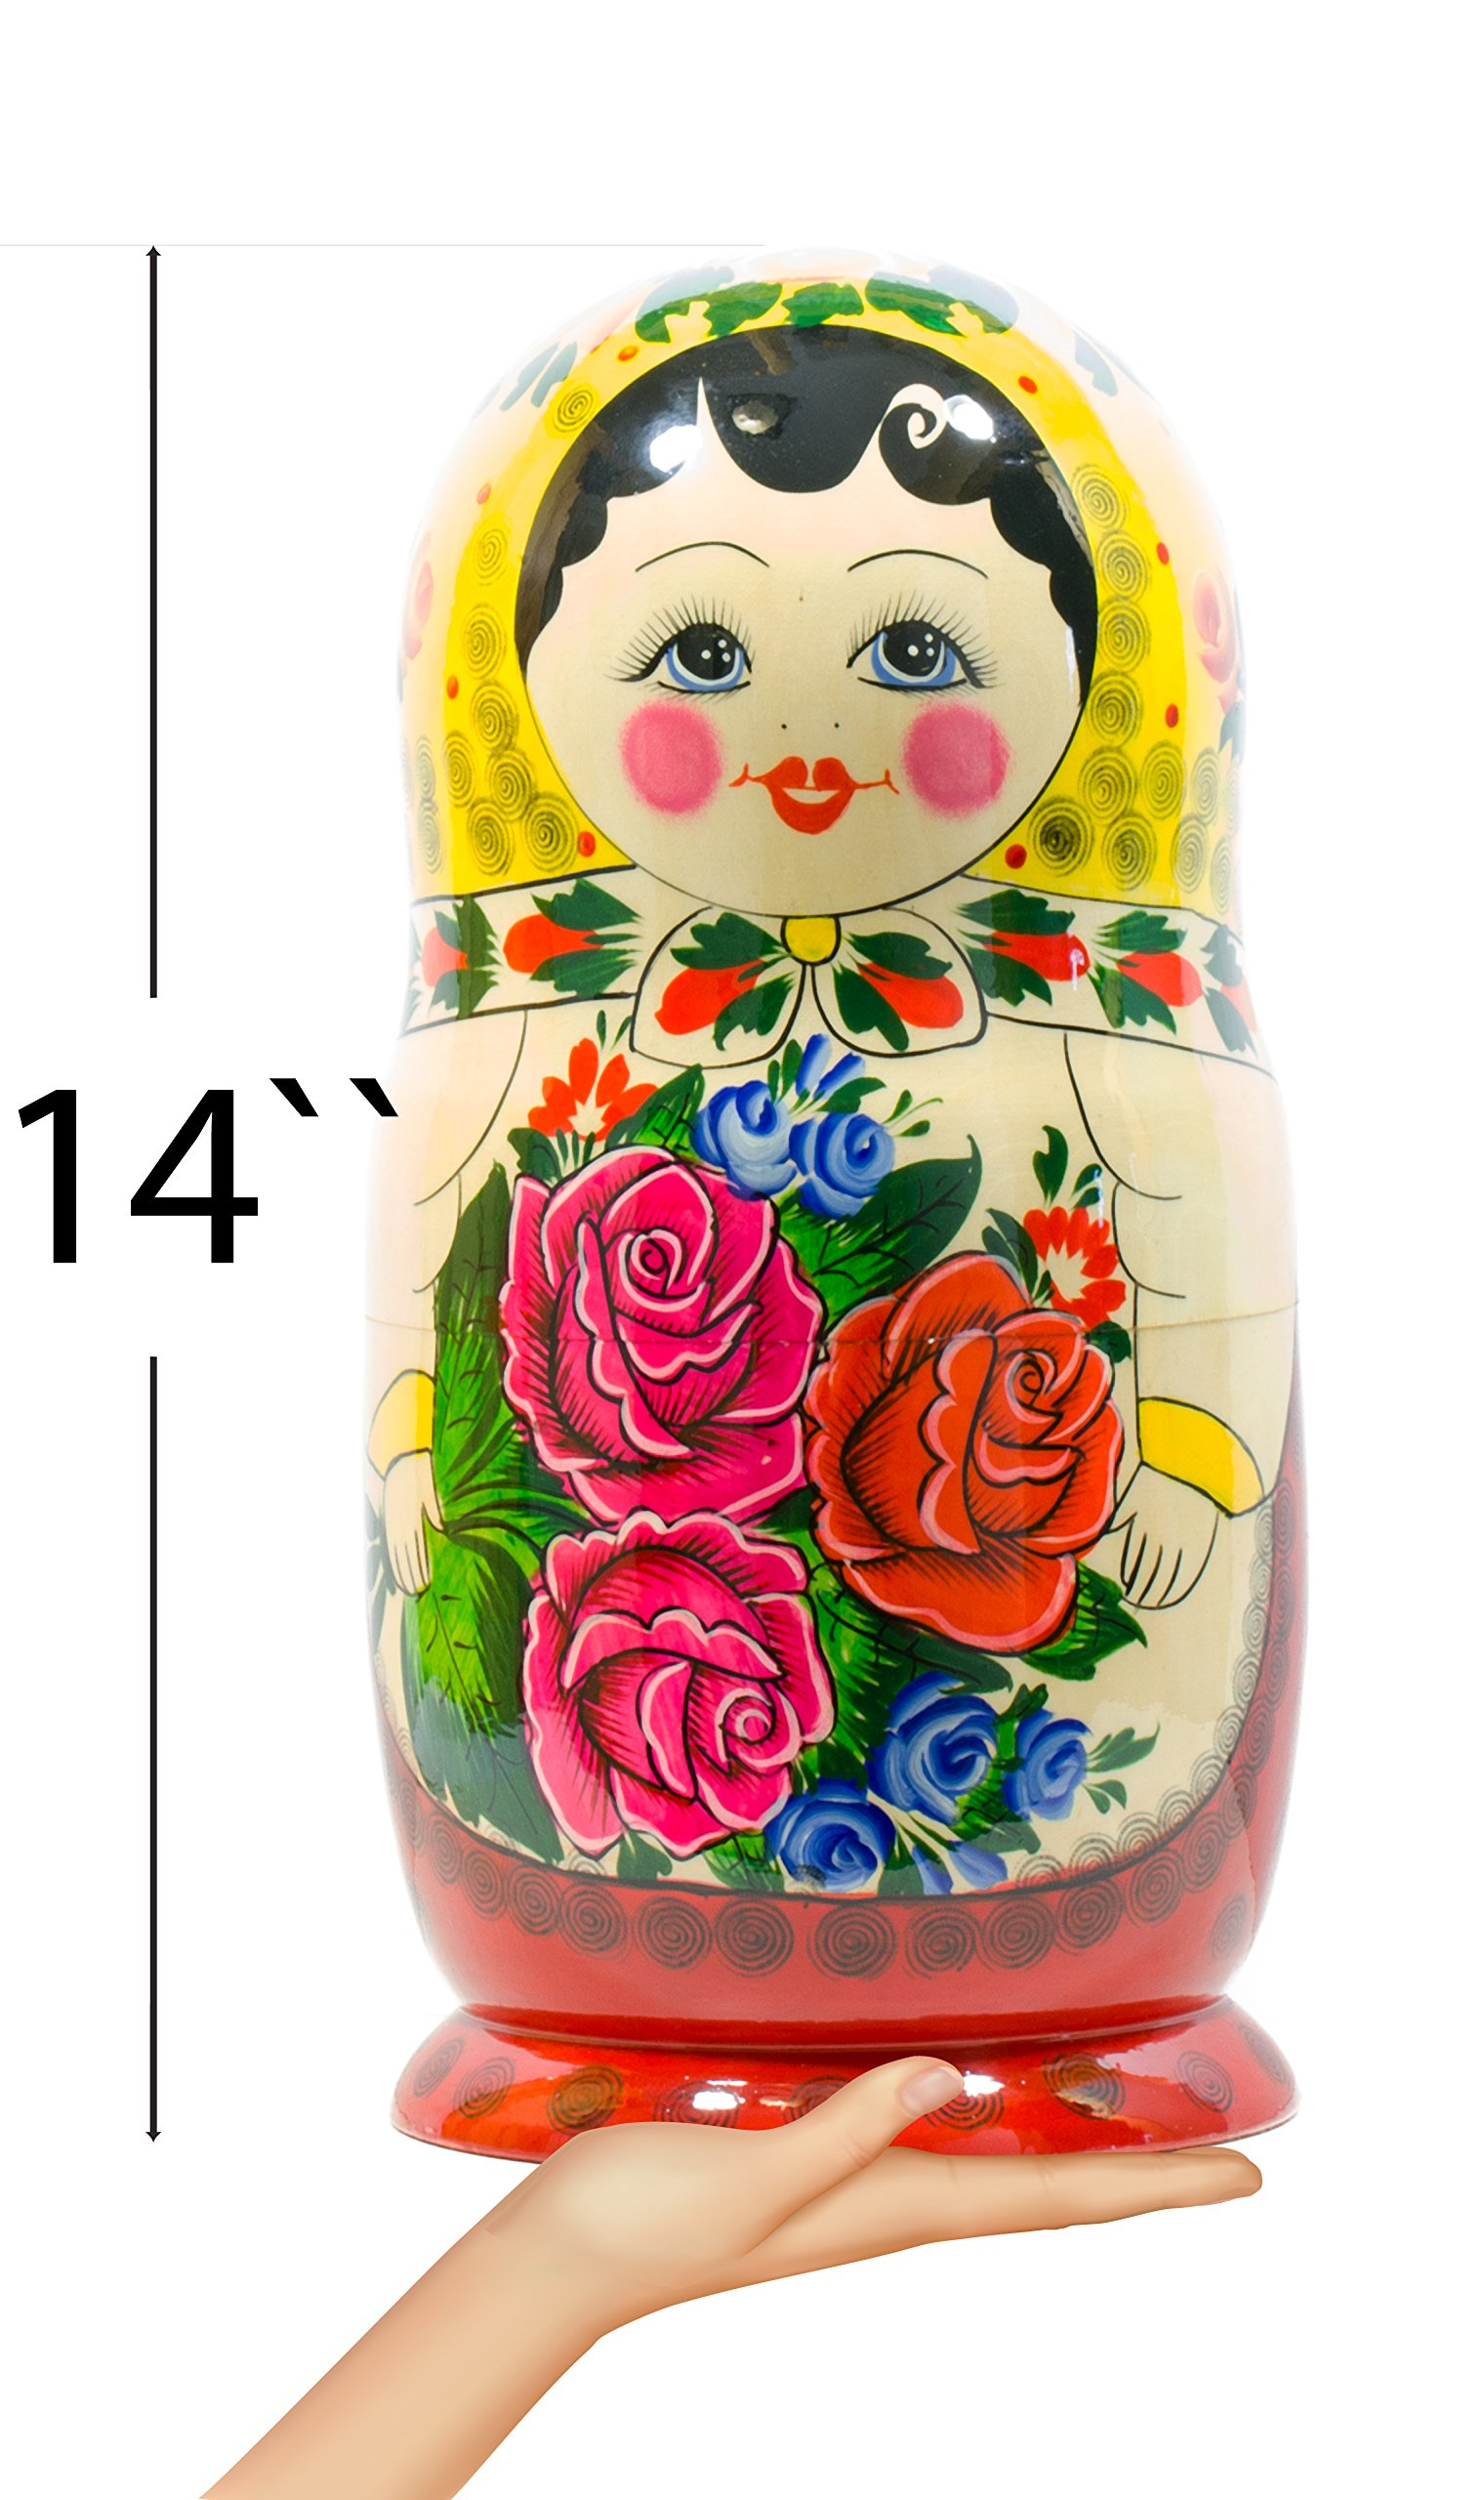 Russian Nesting Doll -Semenovo - Hand Painted in Russia - 6 Color|Size Variations - Wooden Decoration Gift Doll - Traditional Matryoshka Babushka (14``(20 Dolls in 1), Yellow - Red) by craftsfromrussia (Image #2)